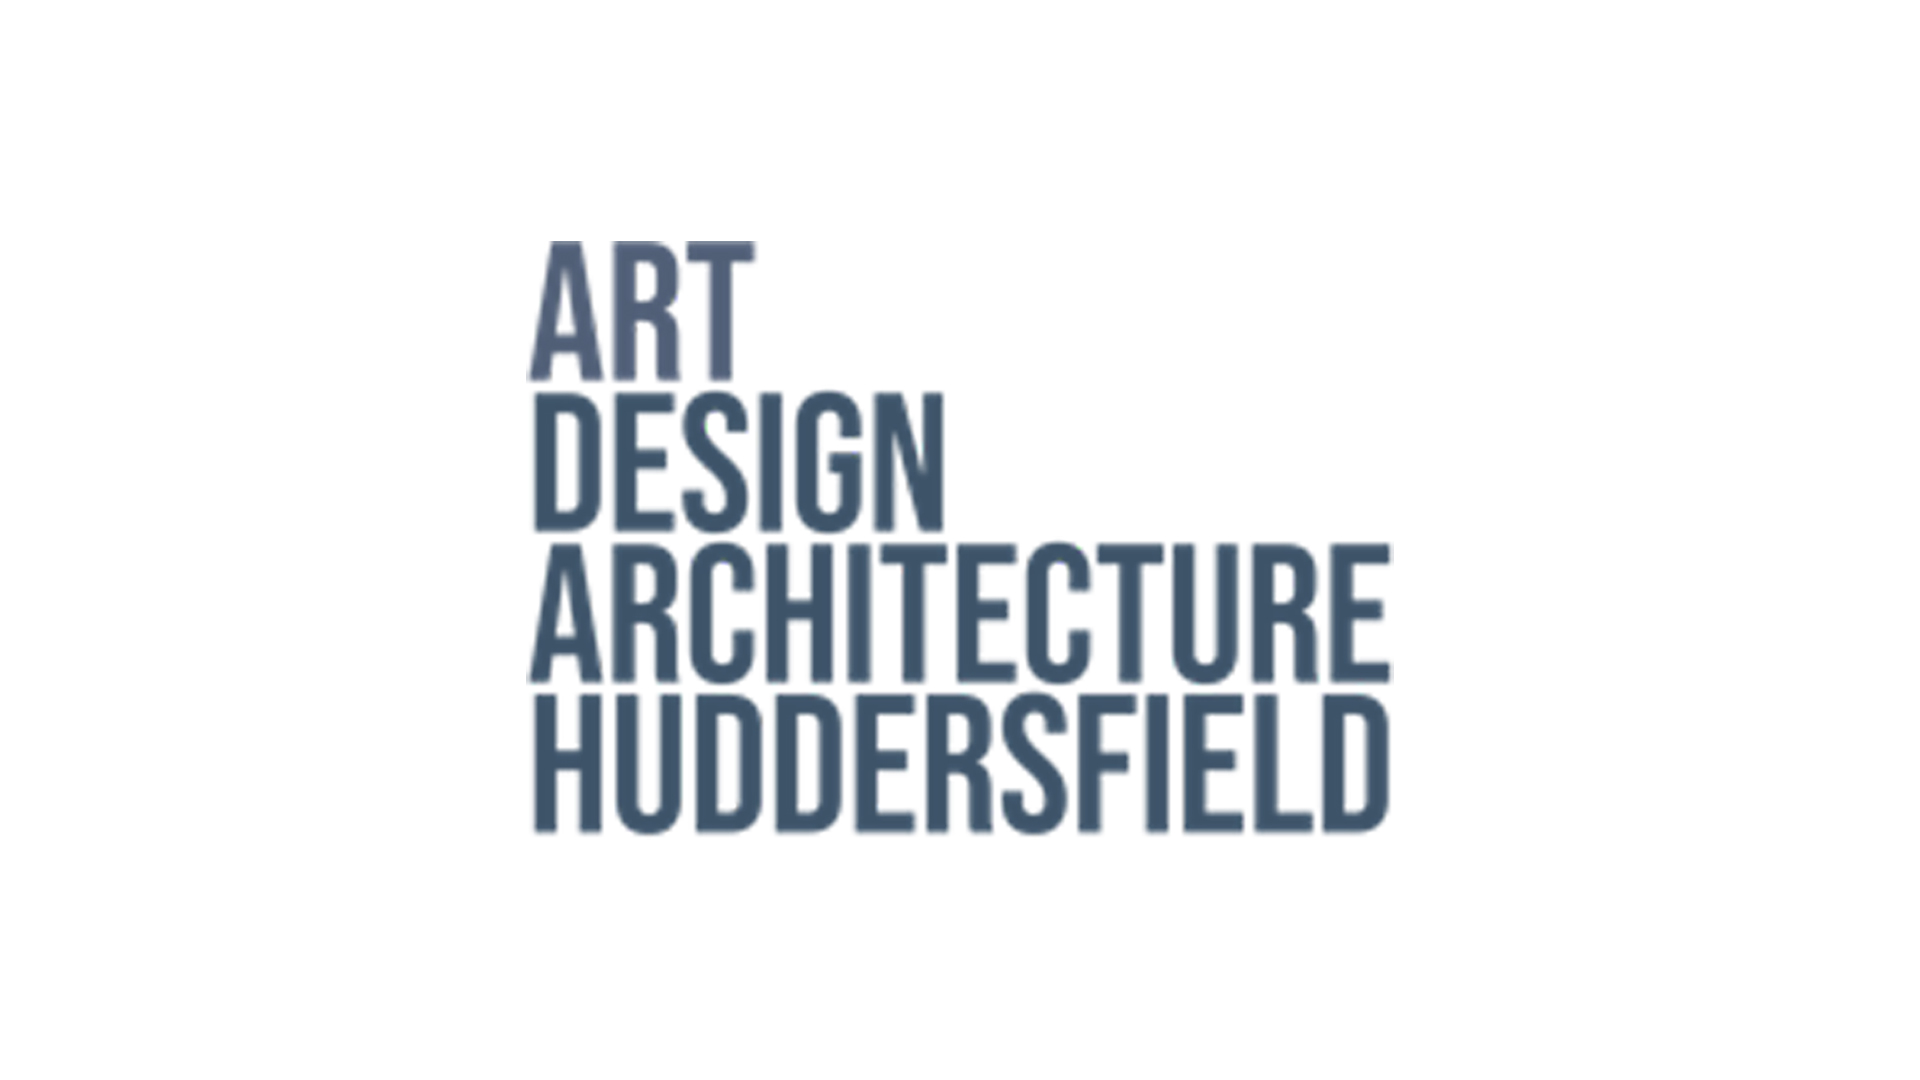 A logo for the the School of Art Design and Architecture (ADA) of huddersfield University